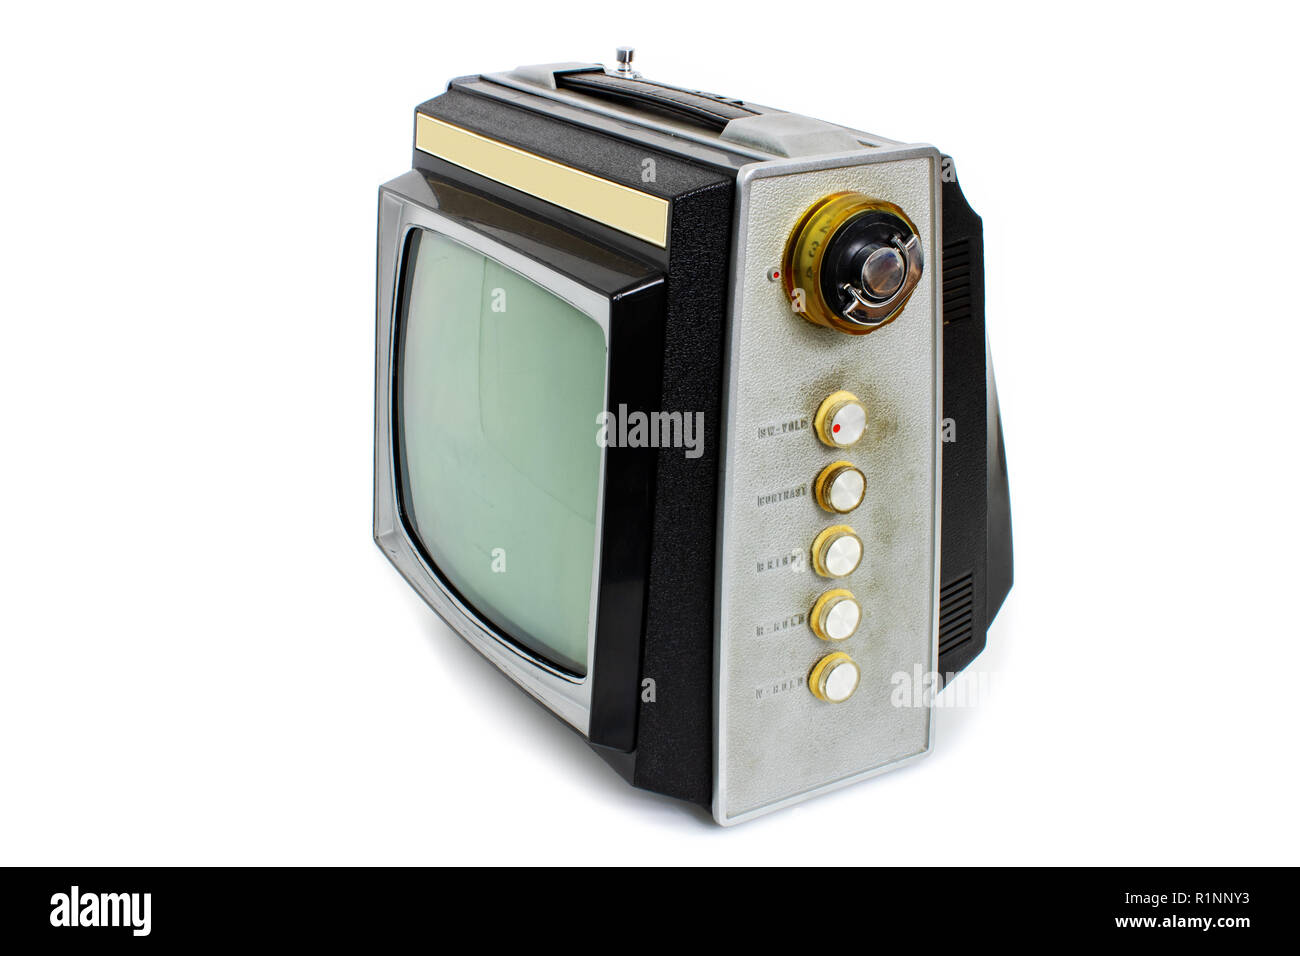 Old retro TV receiver for analog television on white background - Stock Image